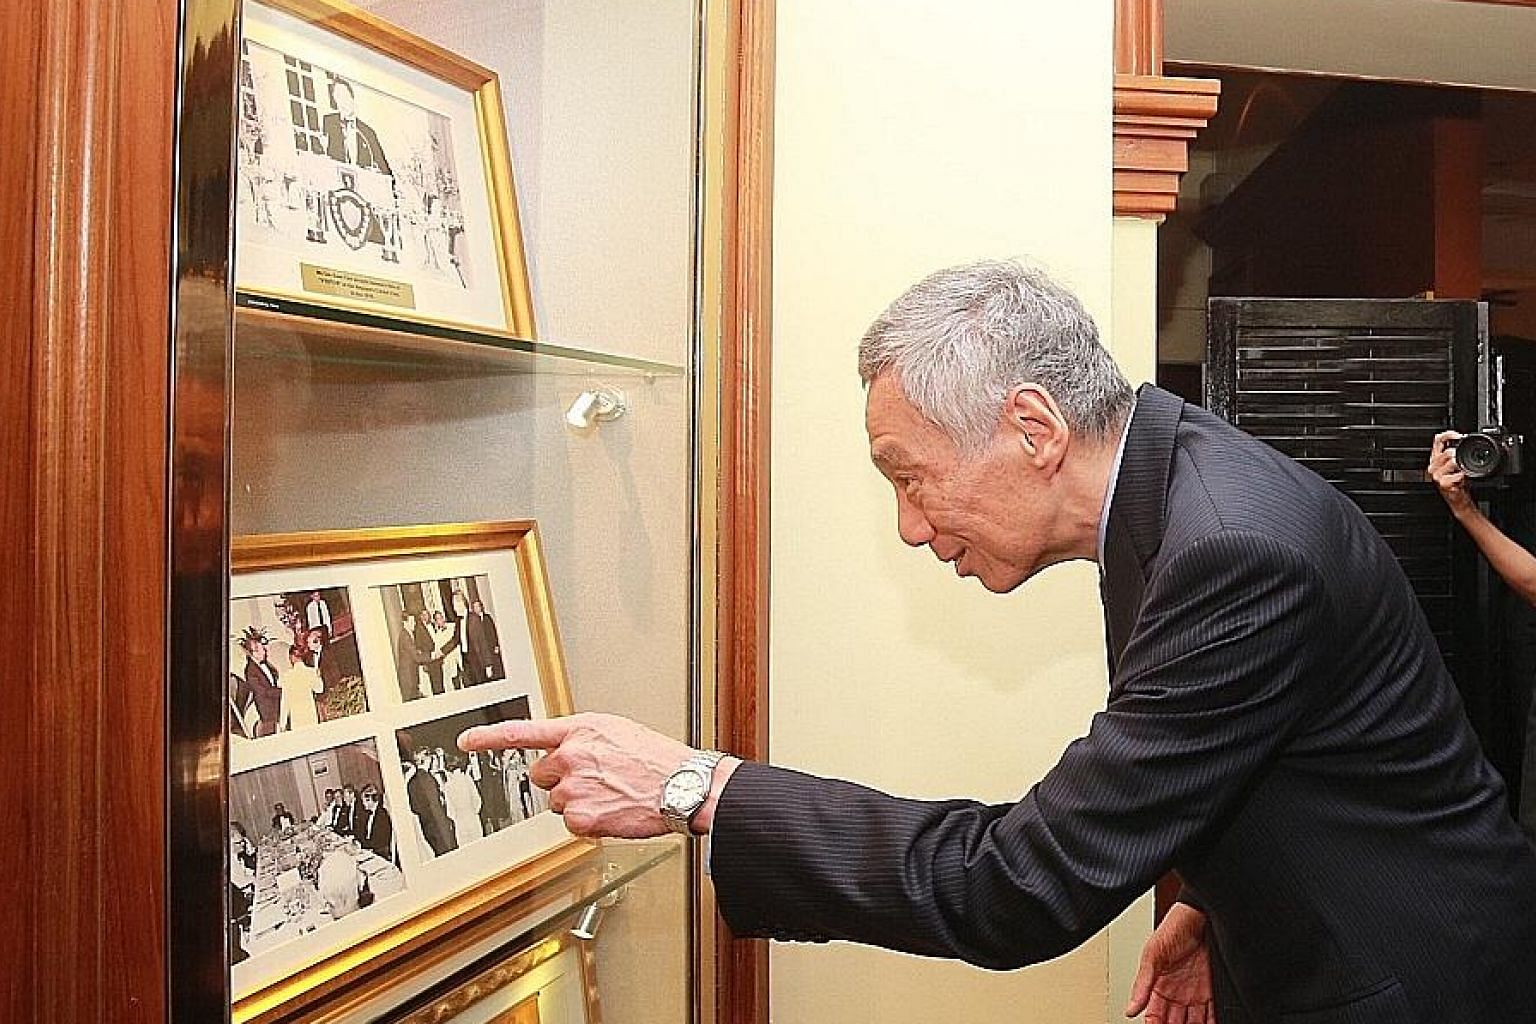 Prime Minister Lee Hsien Loong looking at photographs displayed at the Singapore Cricket Club which feature the late Mr Lee Kuan Yew. PM Lee was conferred the club's honorary title of Distinguished Visitor yesterday.